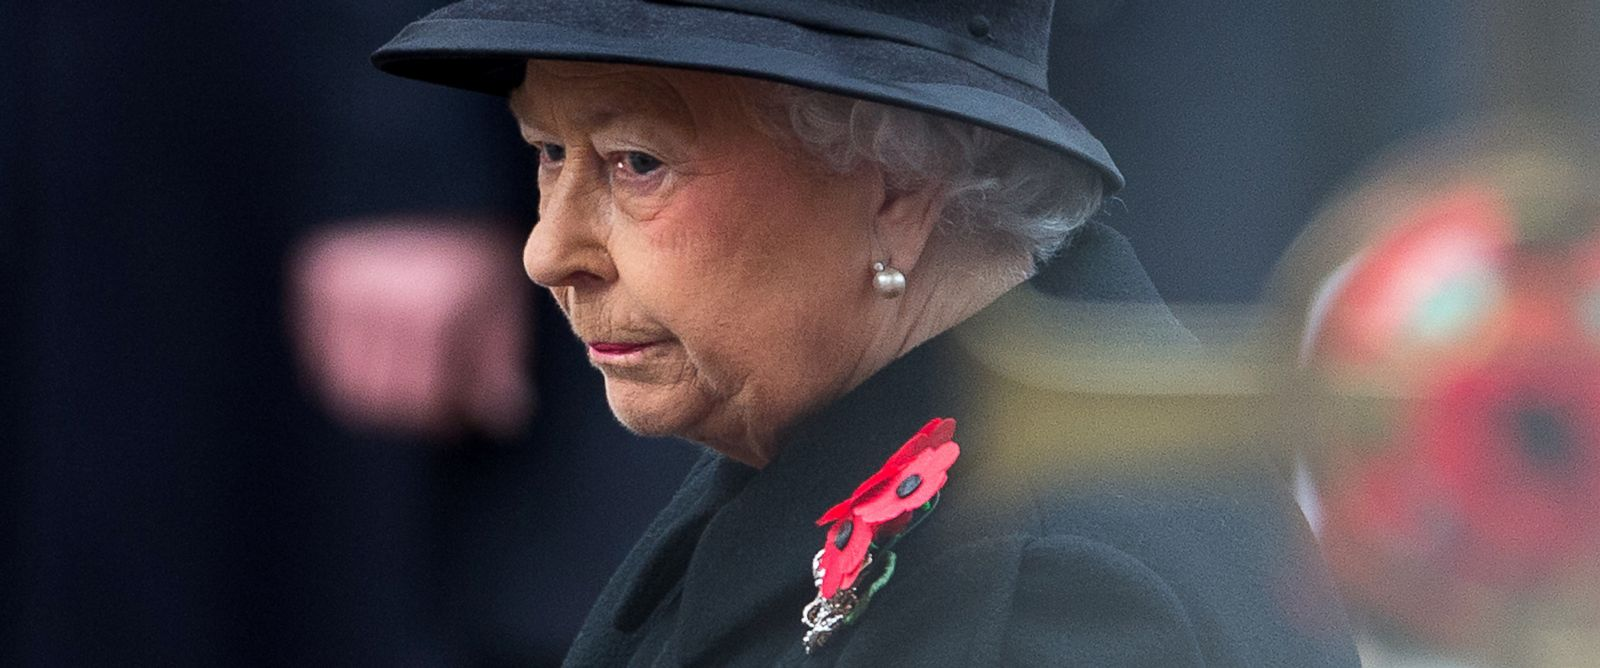 PHOTO: Britains Queen Elizabeth II listens during the service of remembrance at the Cenotaph in Whitehall, London in this Nov. 9, 2014 file photo.